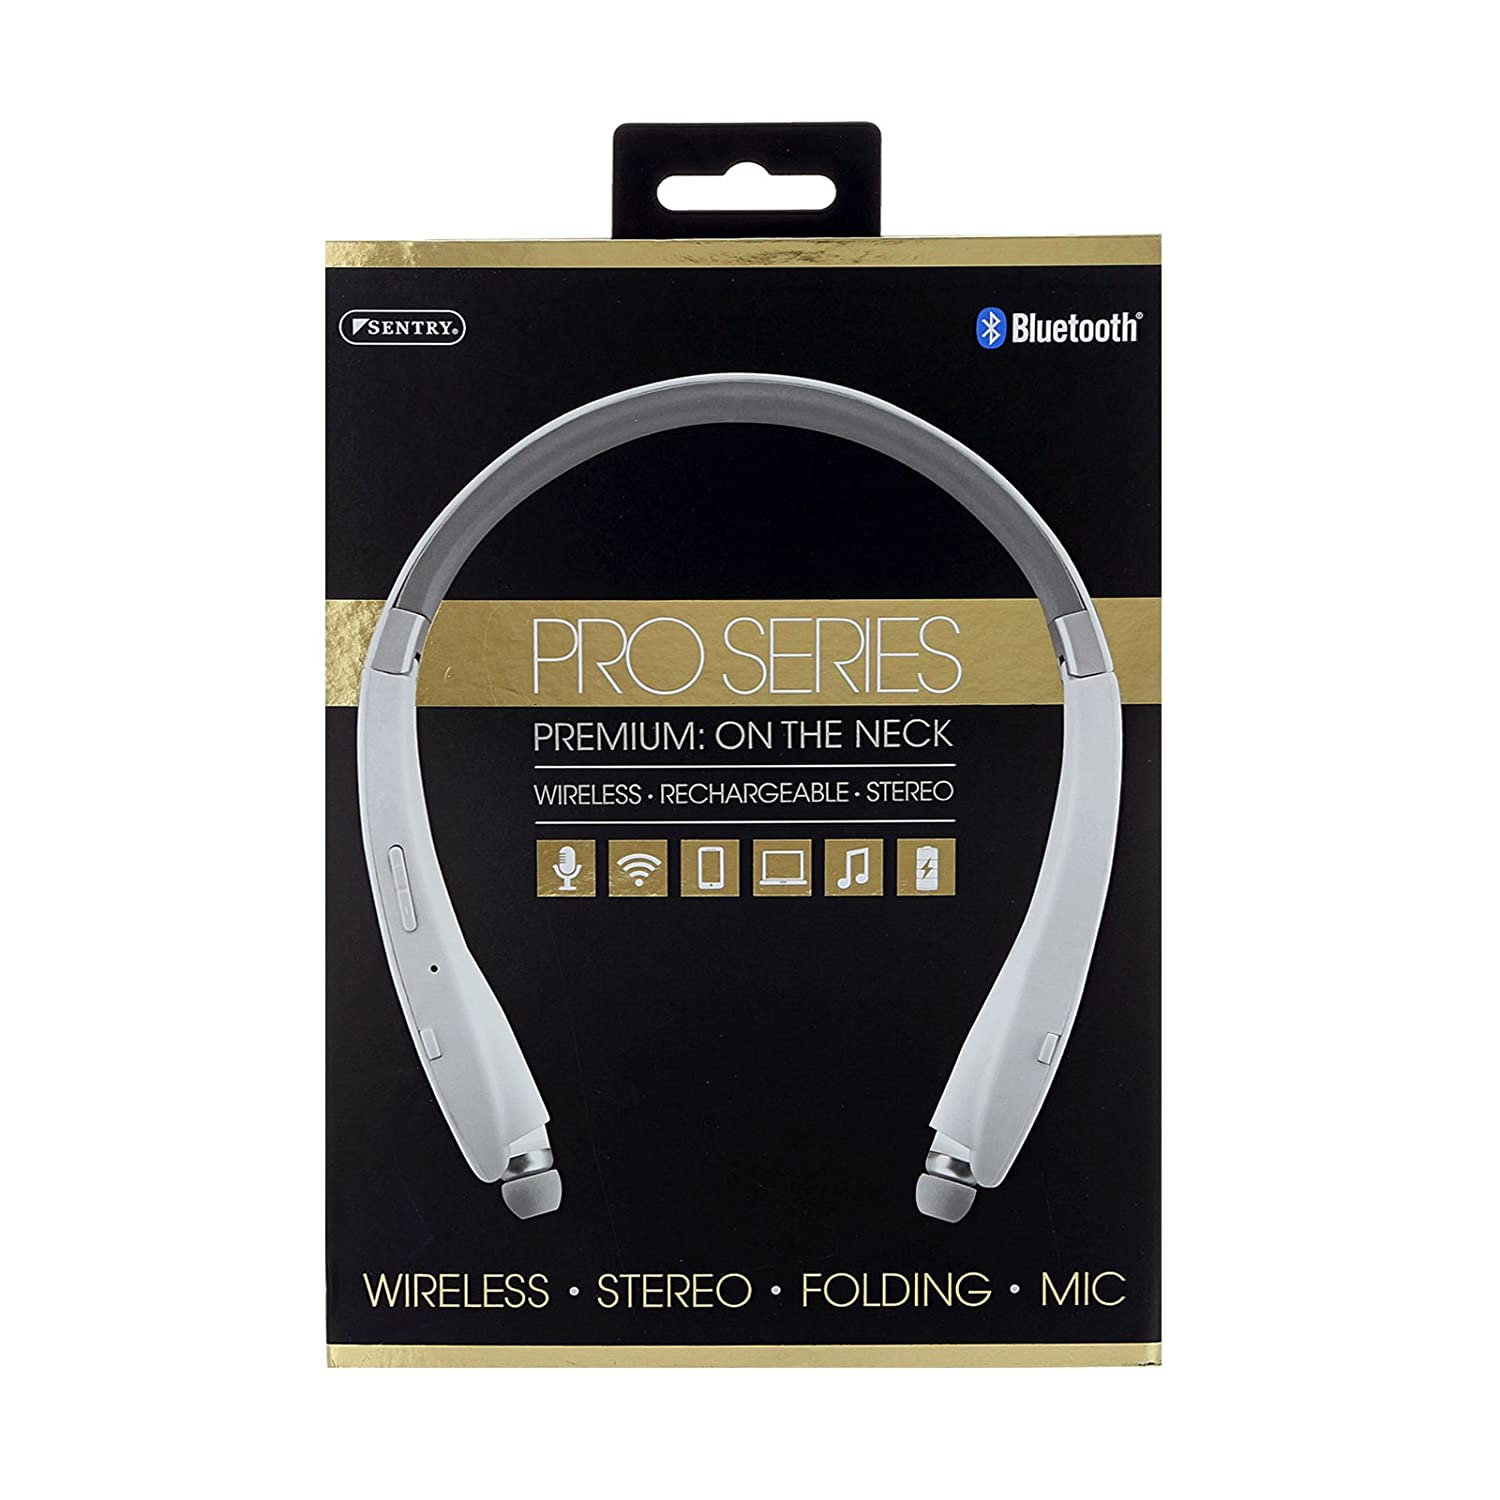 82728f3089a Amazon.com: Sentry Pro Series Bluetooth, Rechargeable Wireless On The Neck  Ear Buds, BT951: Home Audio & Theater